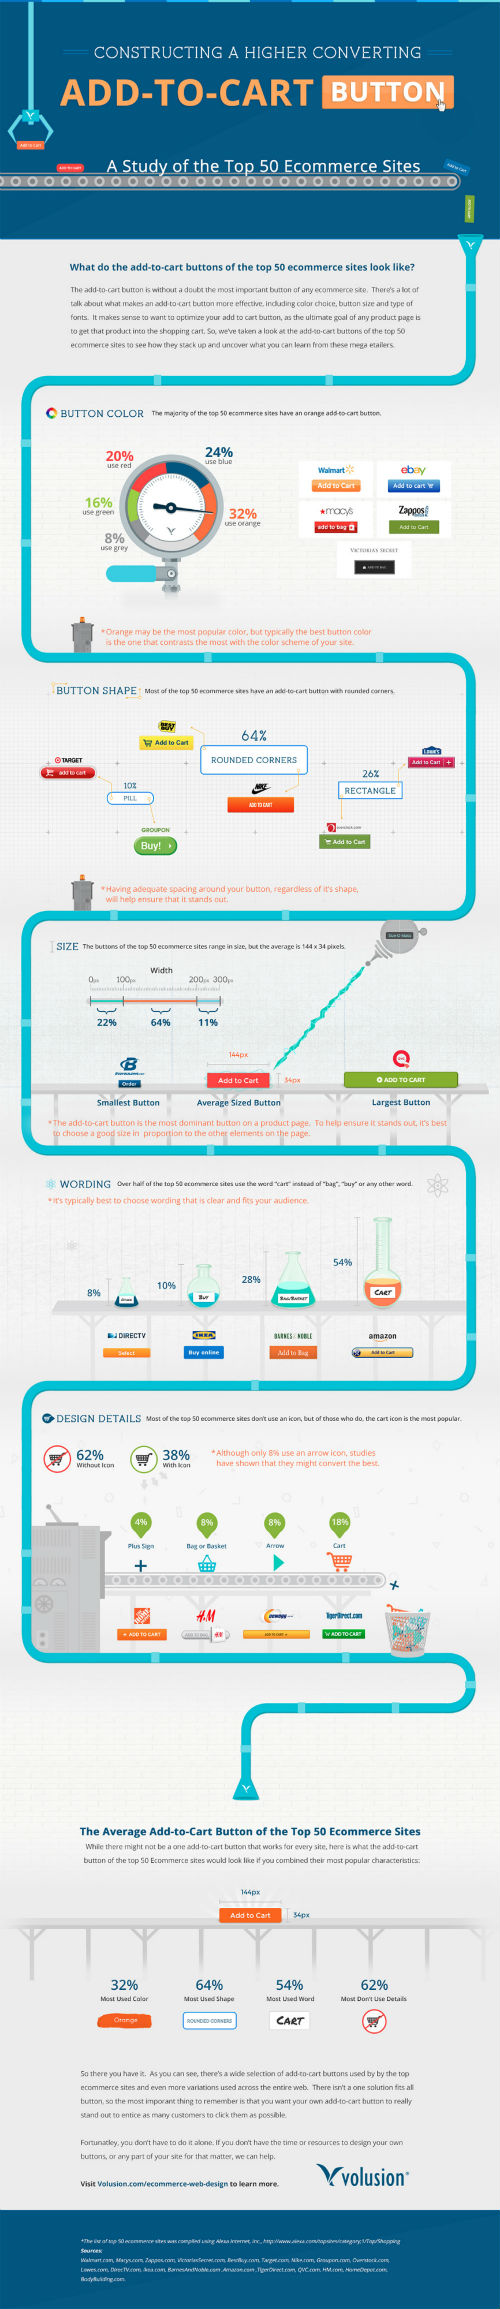 Infographic-10-17-2013222small